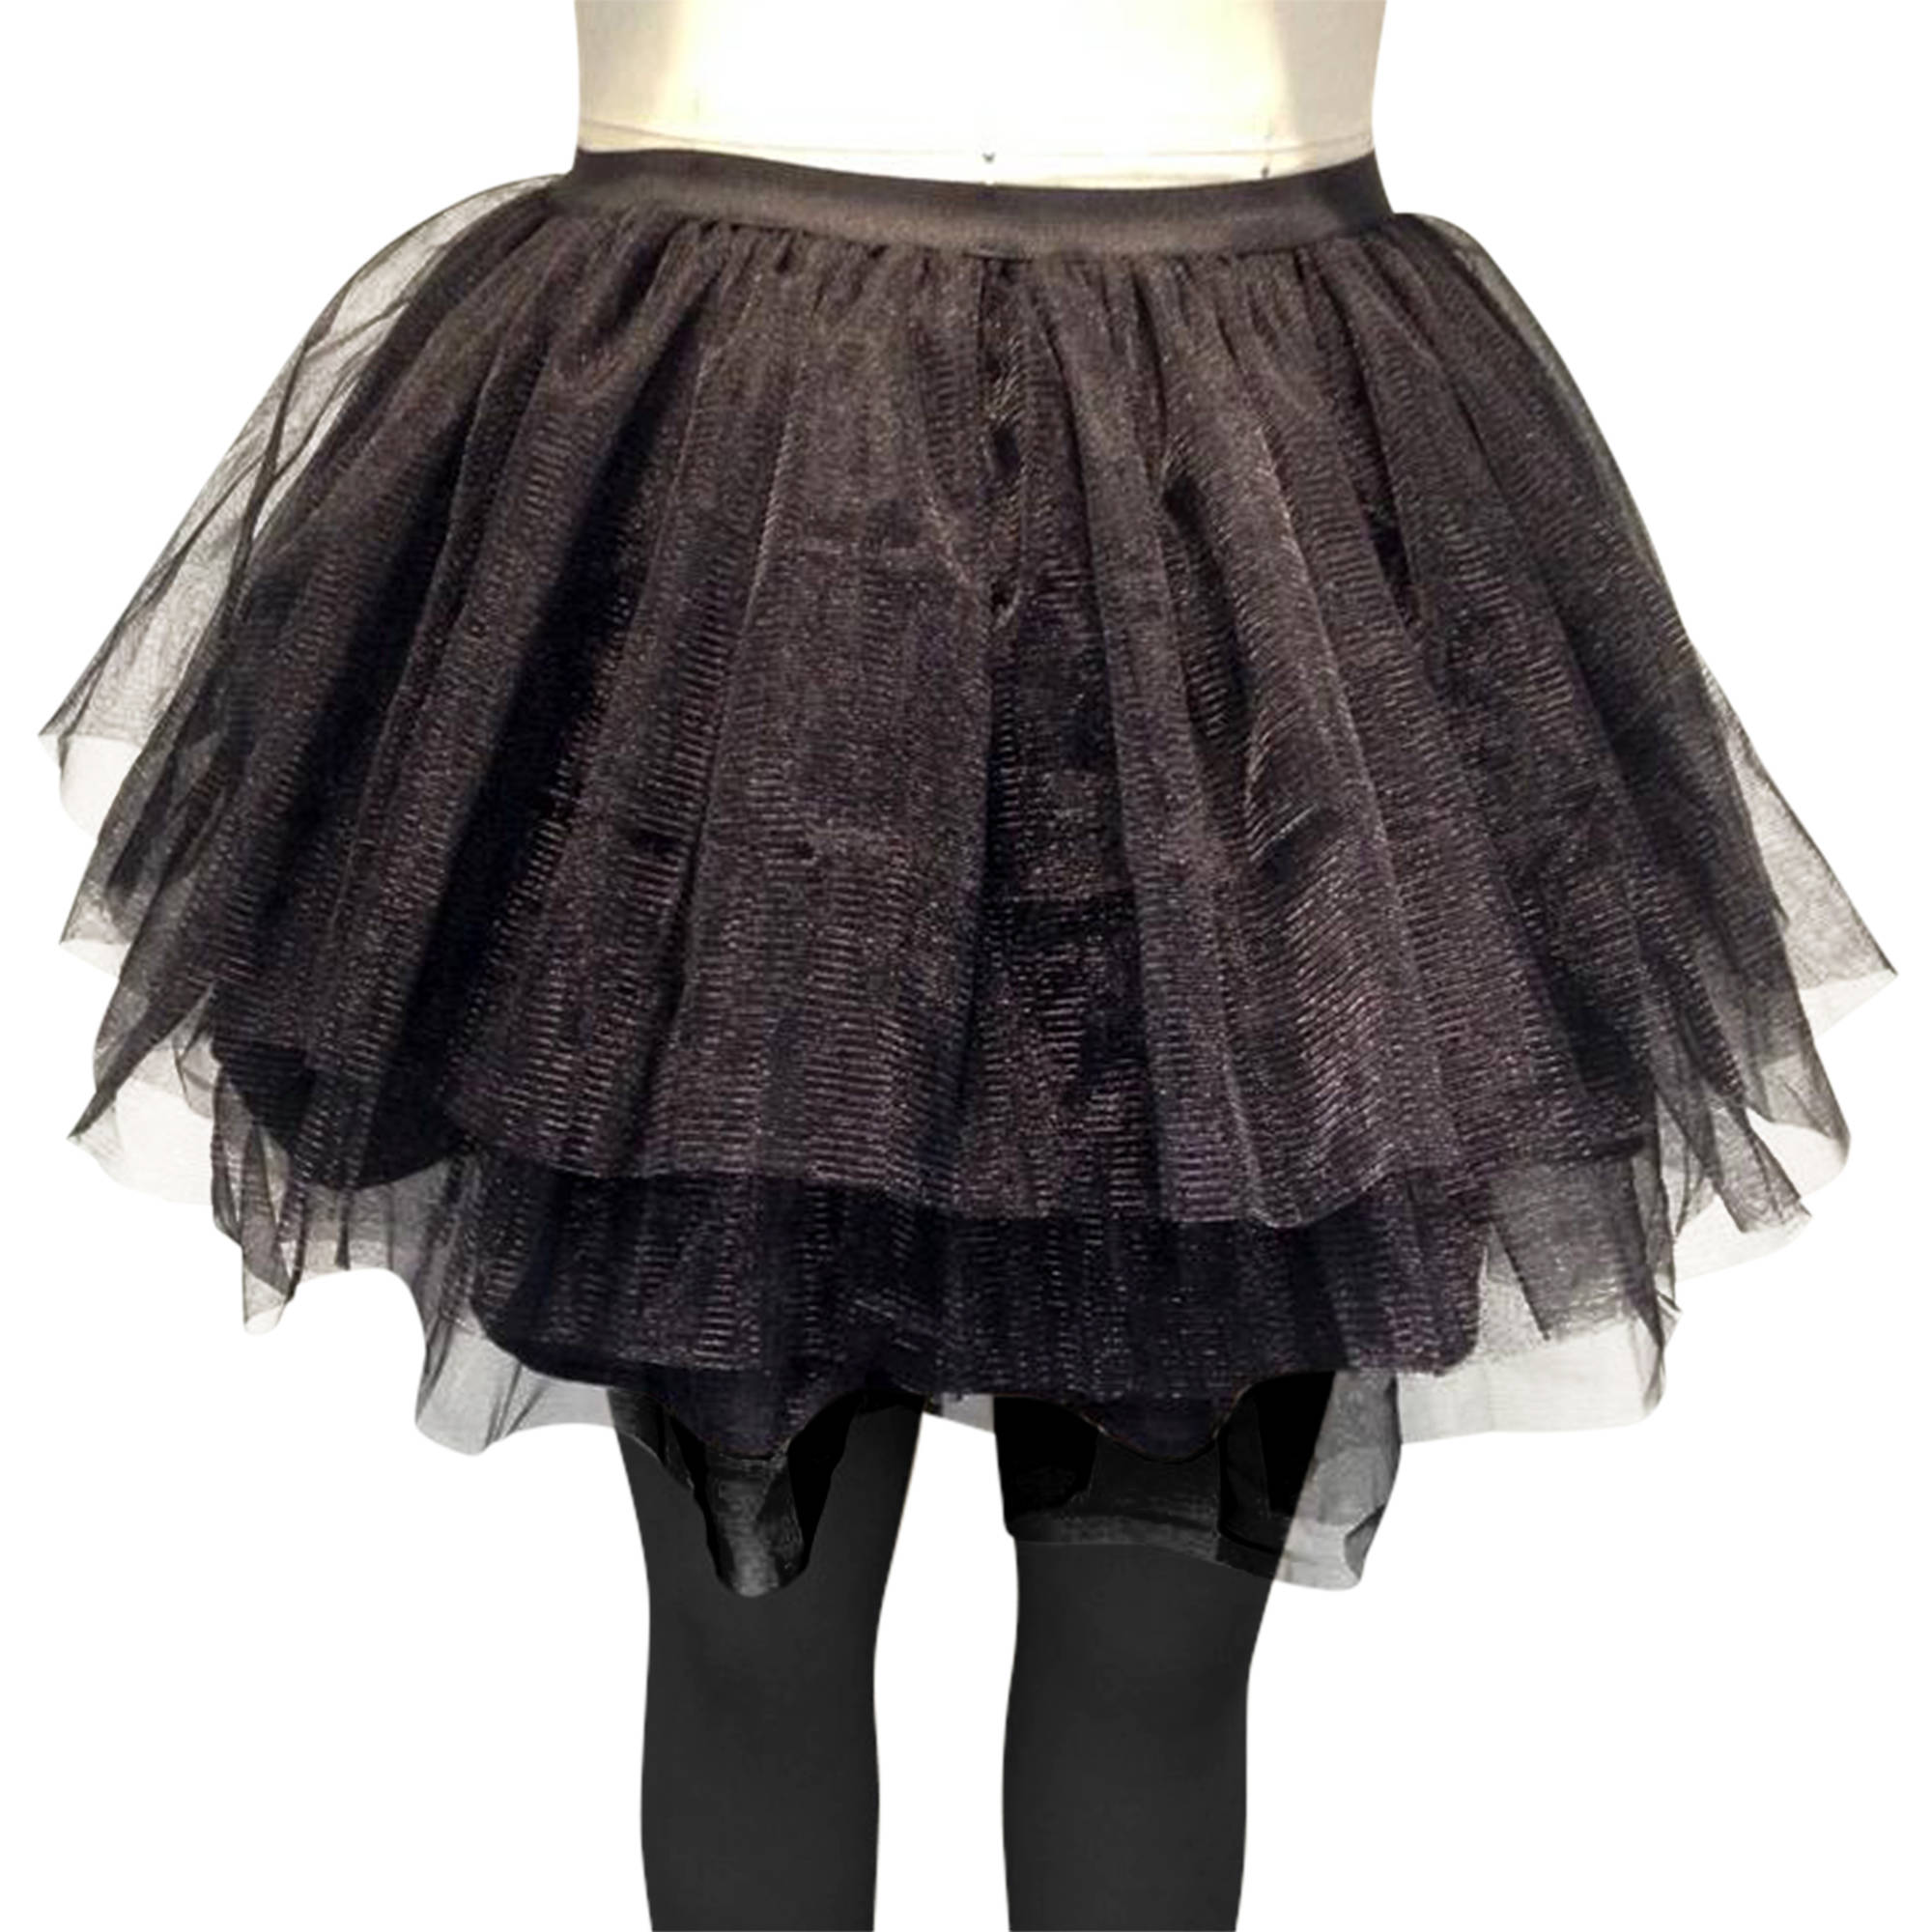 Layered Black Petticoat Women's Adult Halloween Costume